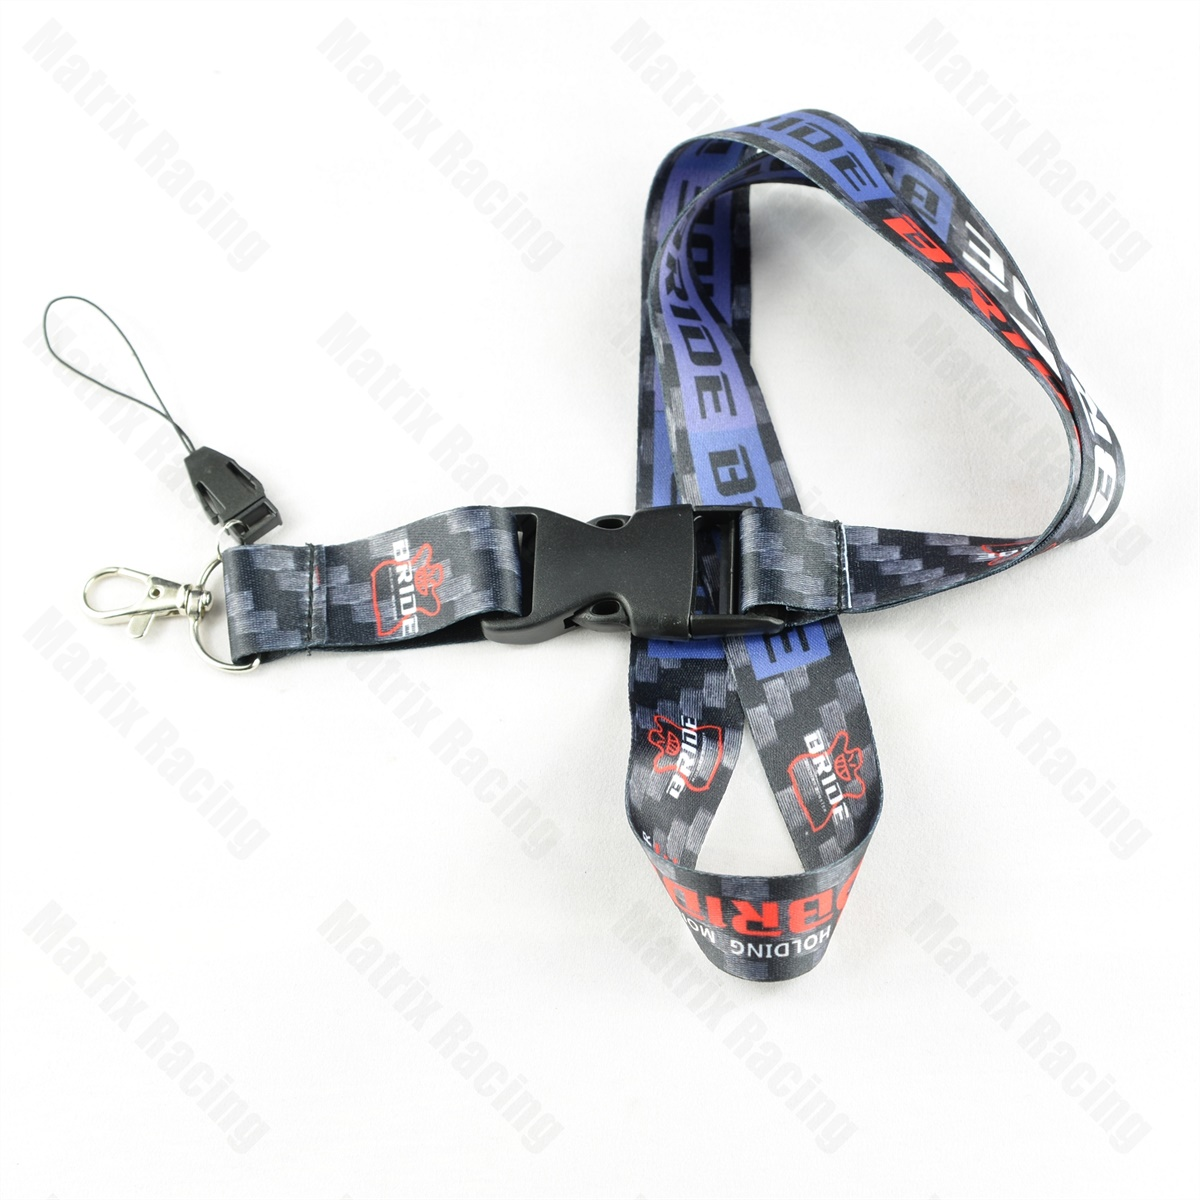 JDM Style BRIDE Cellphone Lanyard JDM Racing Car Keychain ID Holder Mobile Neck Strap with Quick Release